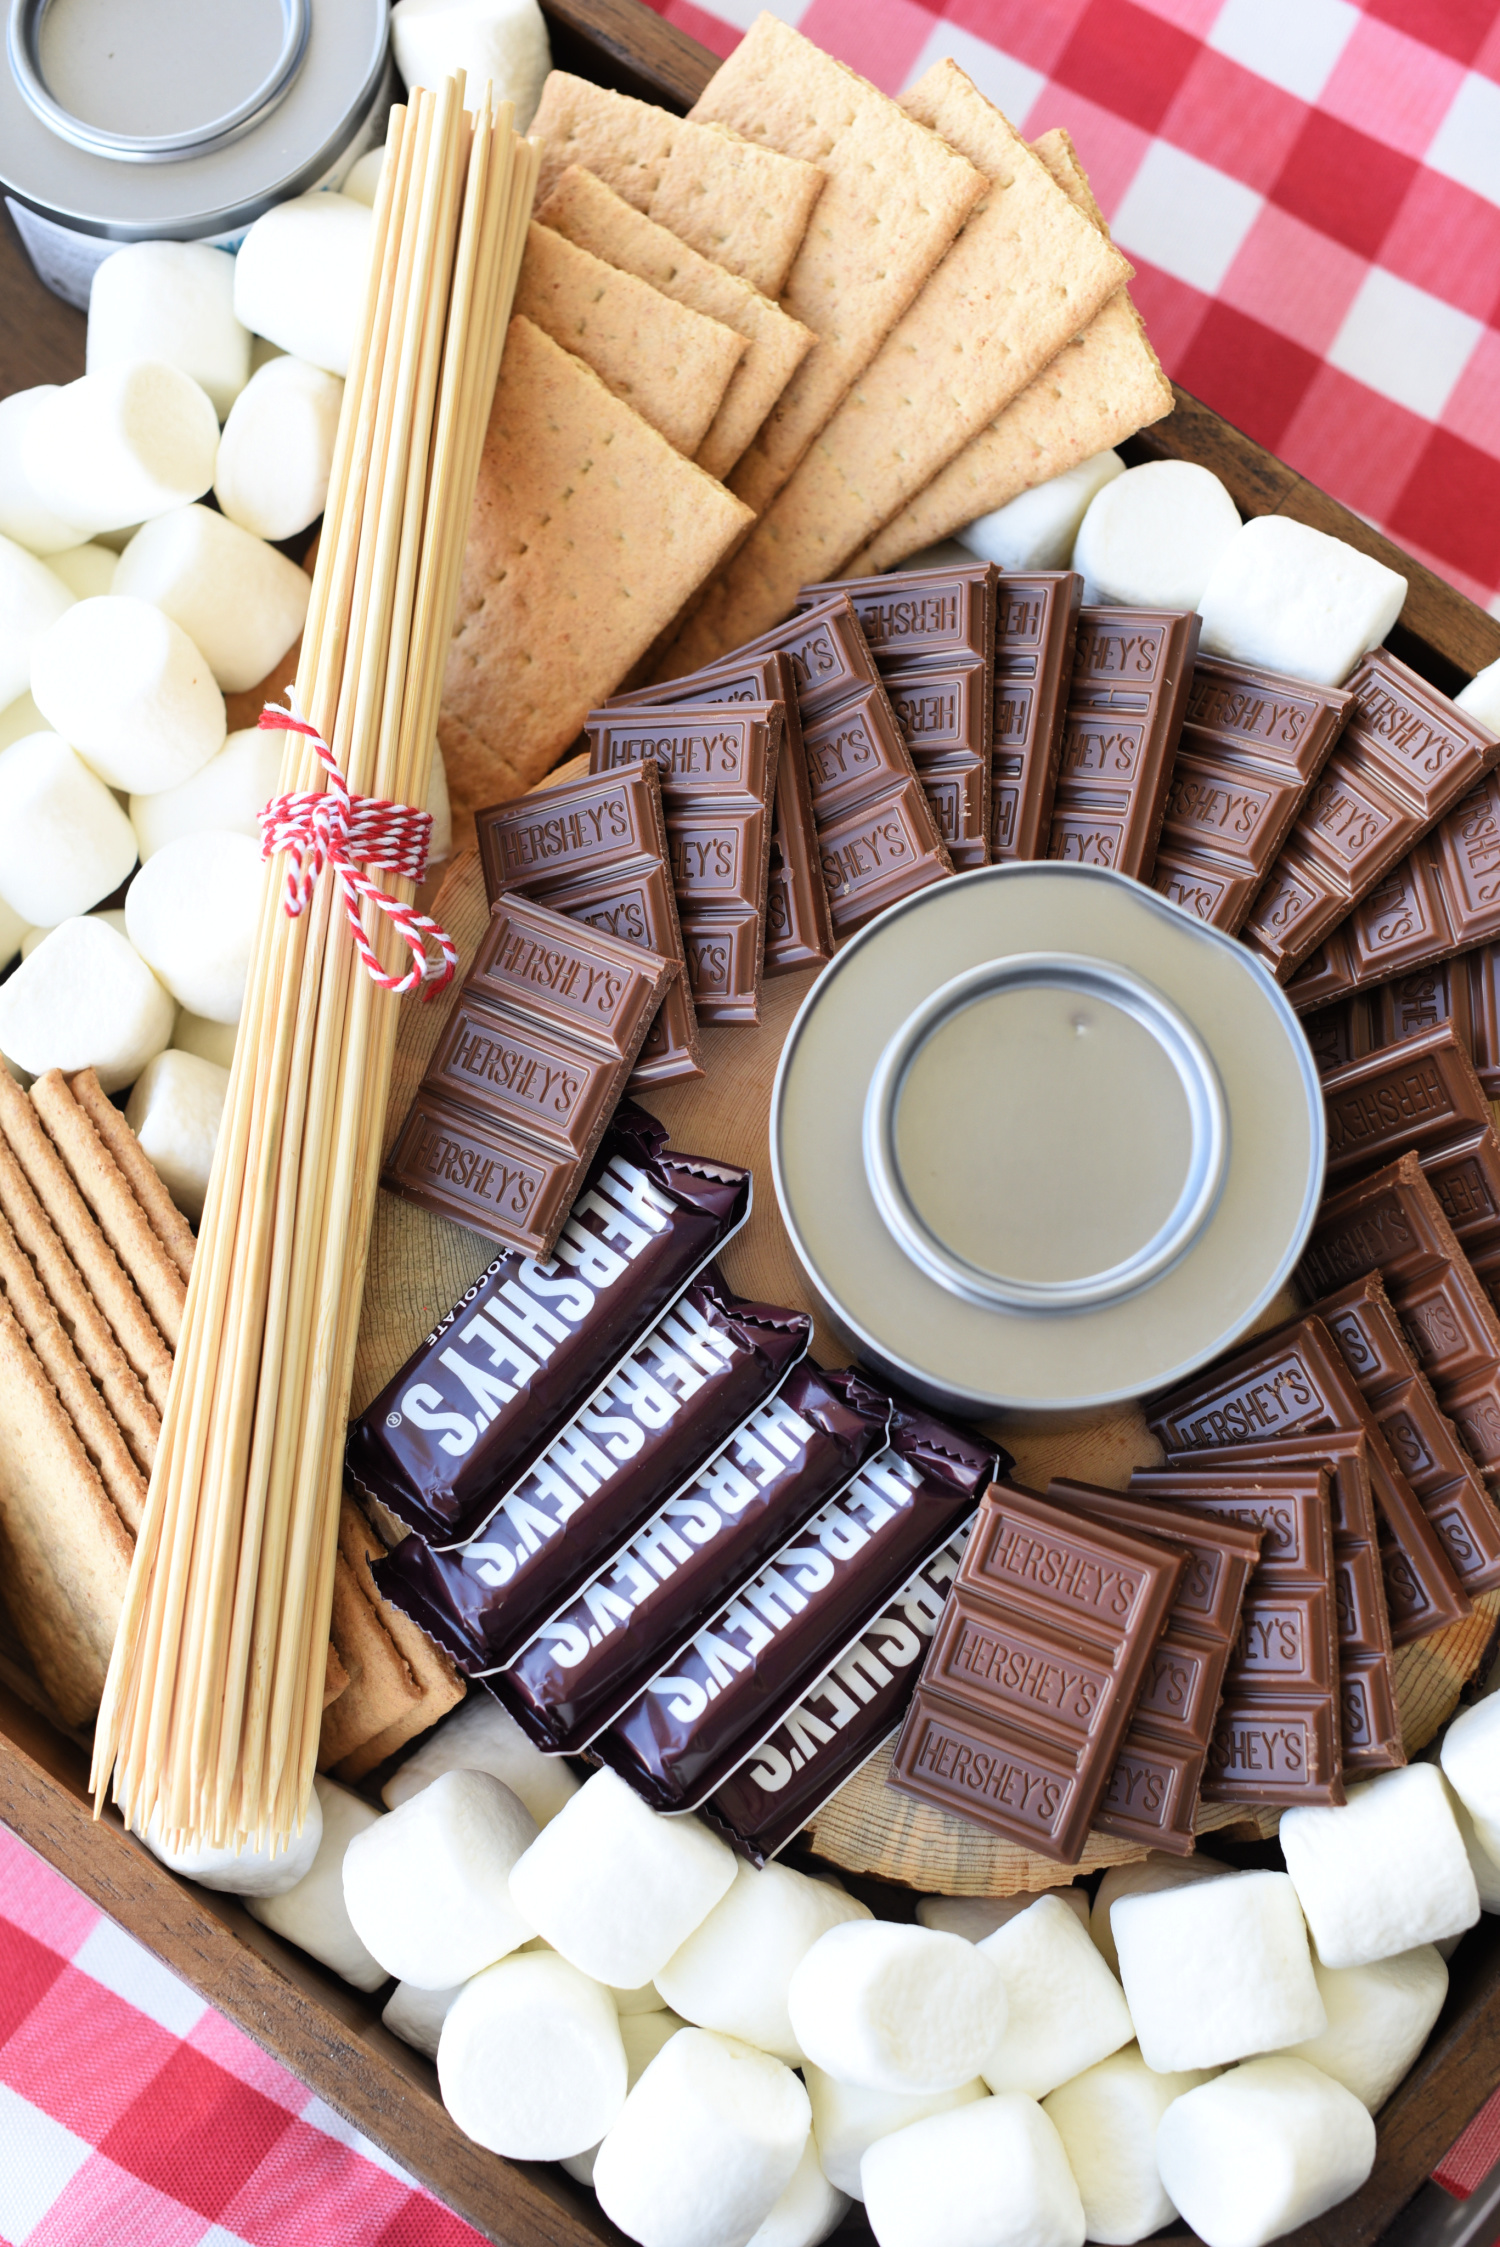 S'mores Charcuterie Board-A fun idea for outdoor entertaining this summer! Make a cute charcuterie board with marshmallows, graham crackers and chocolate, then let guests create their own s'more! #summer #smores #dessert #summerentertaining #charcuterieboard